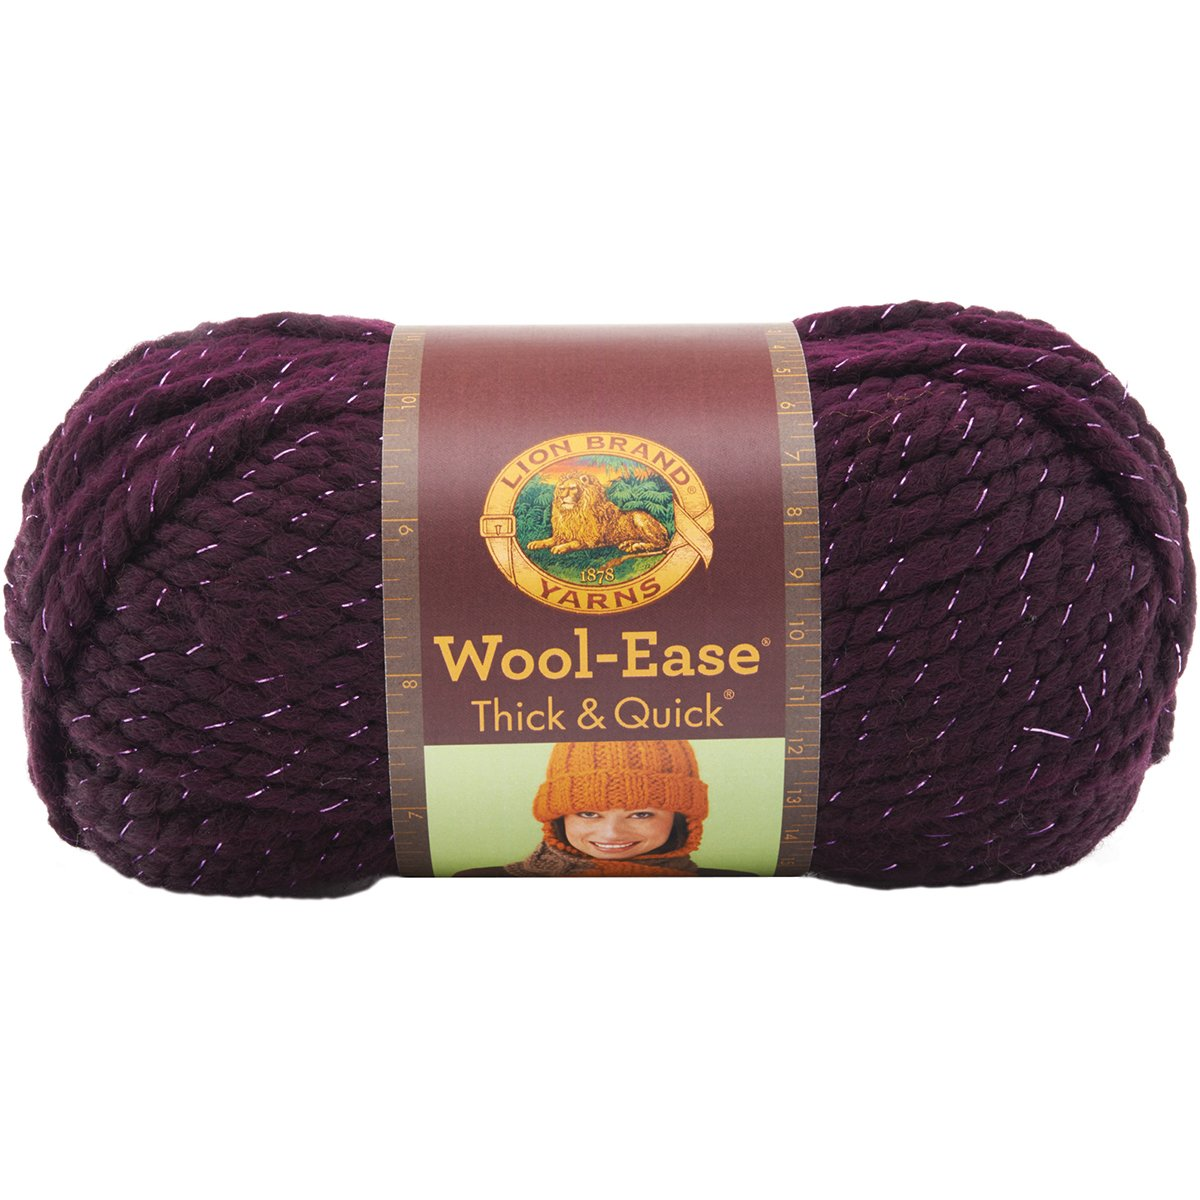 Lion 640-123E Wool-Ease Thick & Quick Yarn , 97 Meters, Oatmeal Lion Brand Yarn